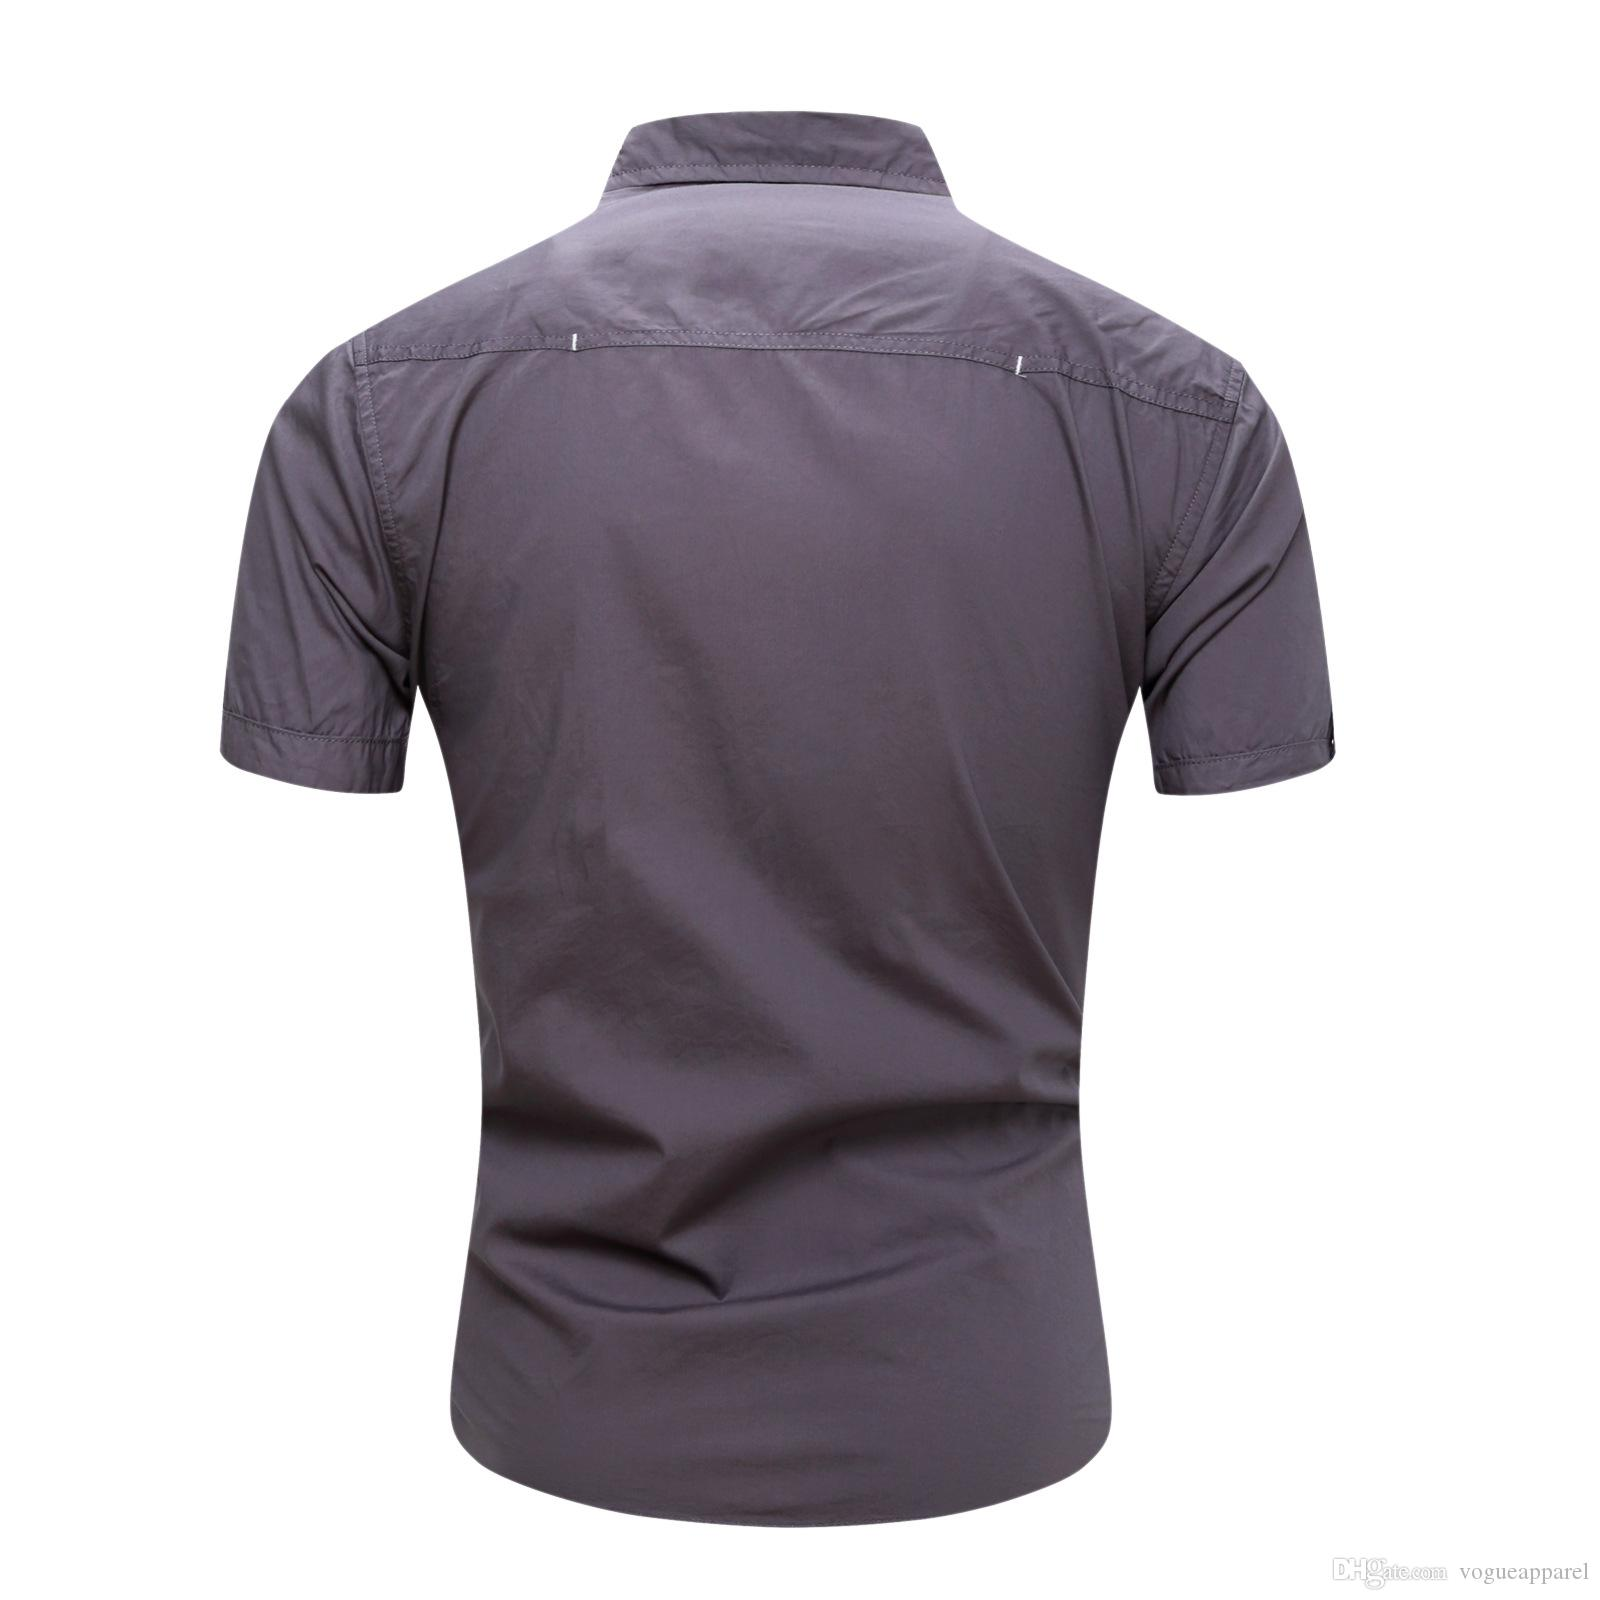 Men Shirts Casual Summer Shirt Short Sleeved Tops Male Sports Tees Single Breasted Pockets Design